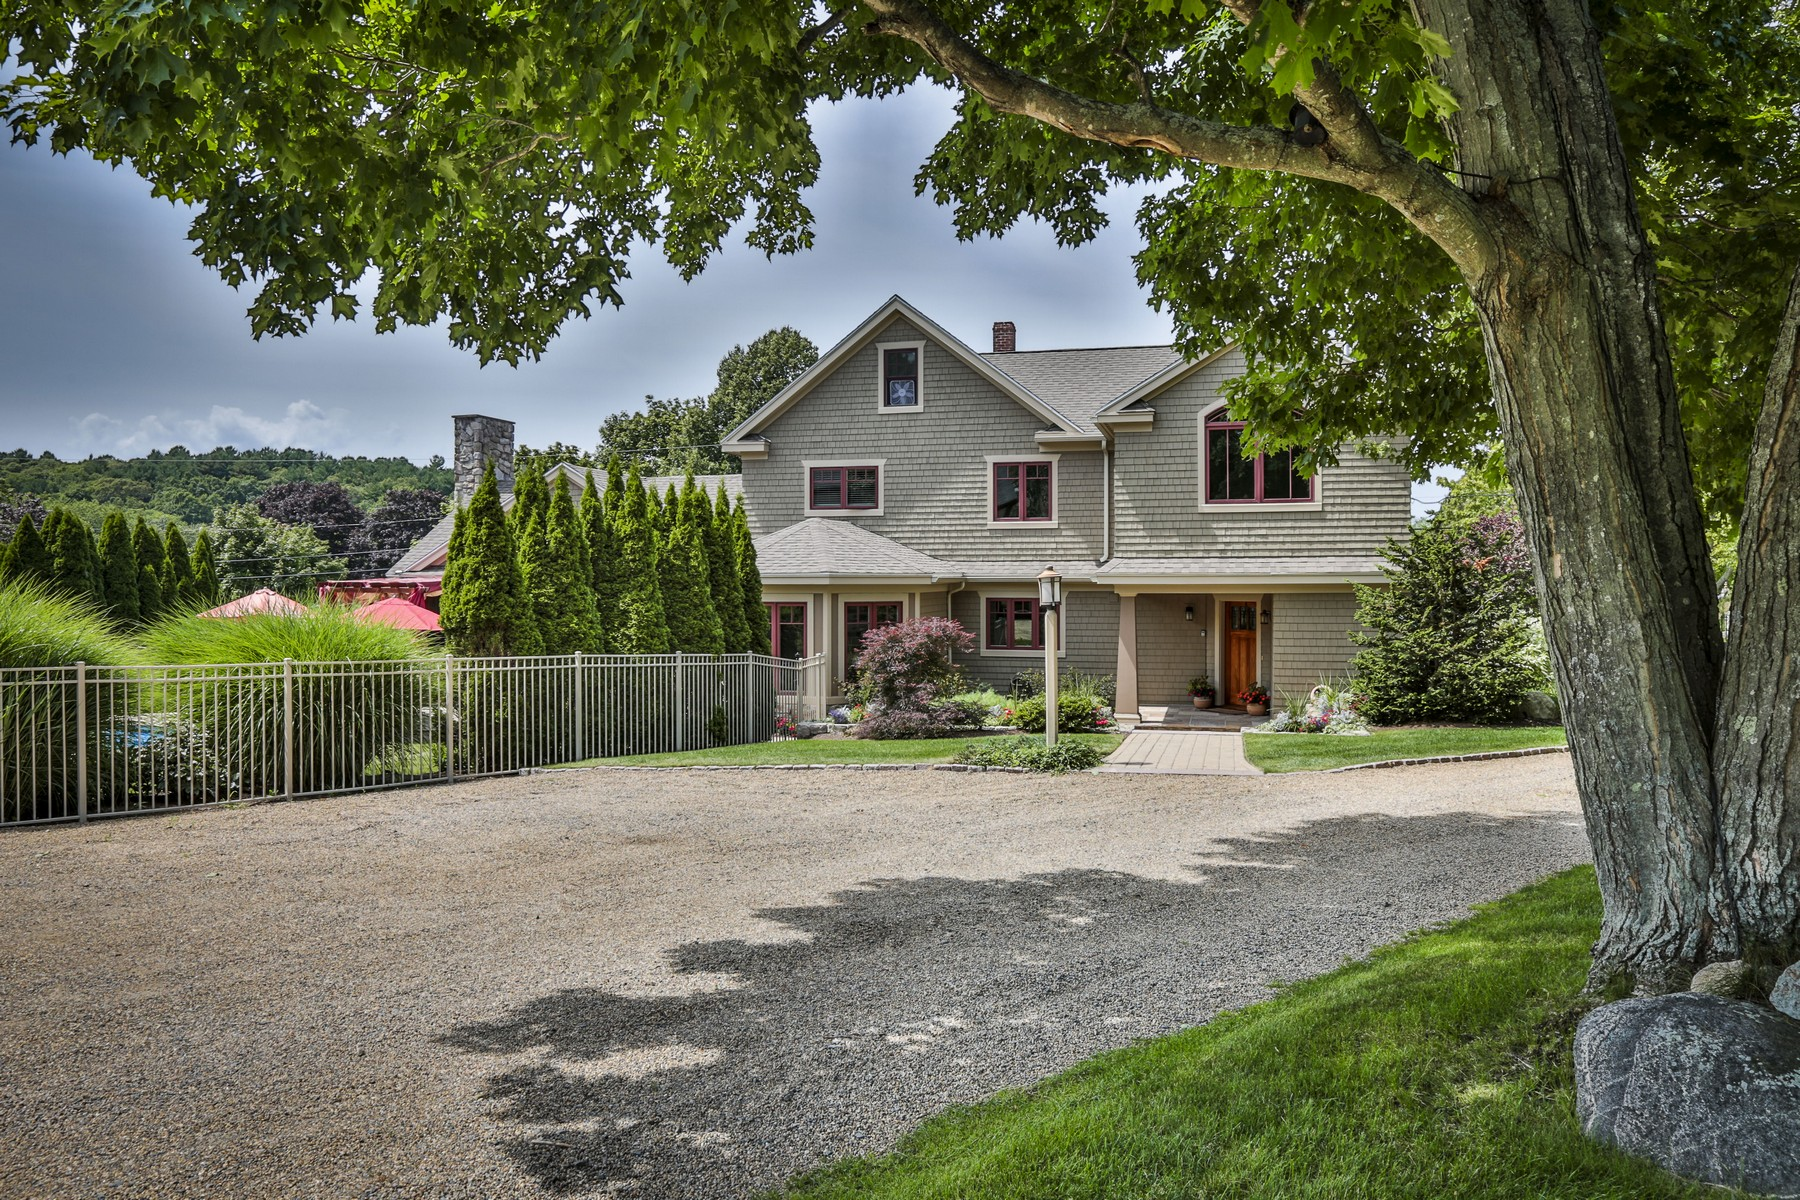 Single Family Home for Sale at Private Oasis in Essex 21 Spring Street Essex, Massachusetts 01929 United States